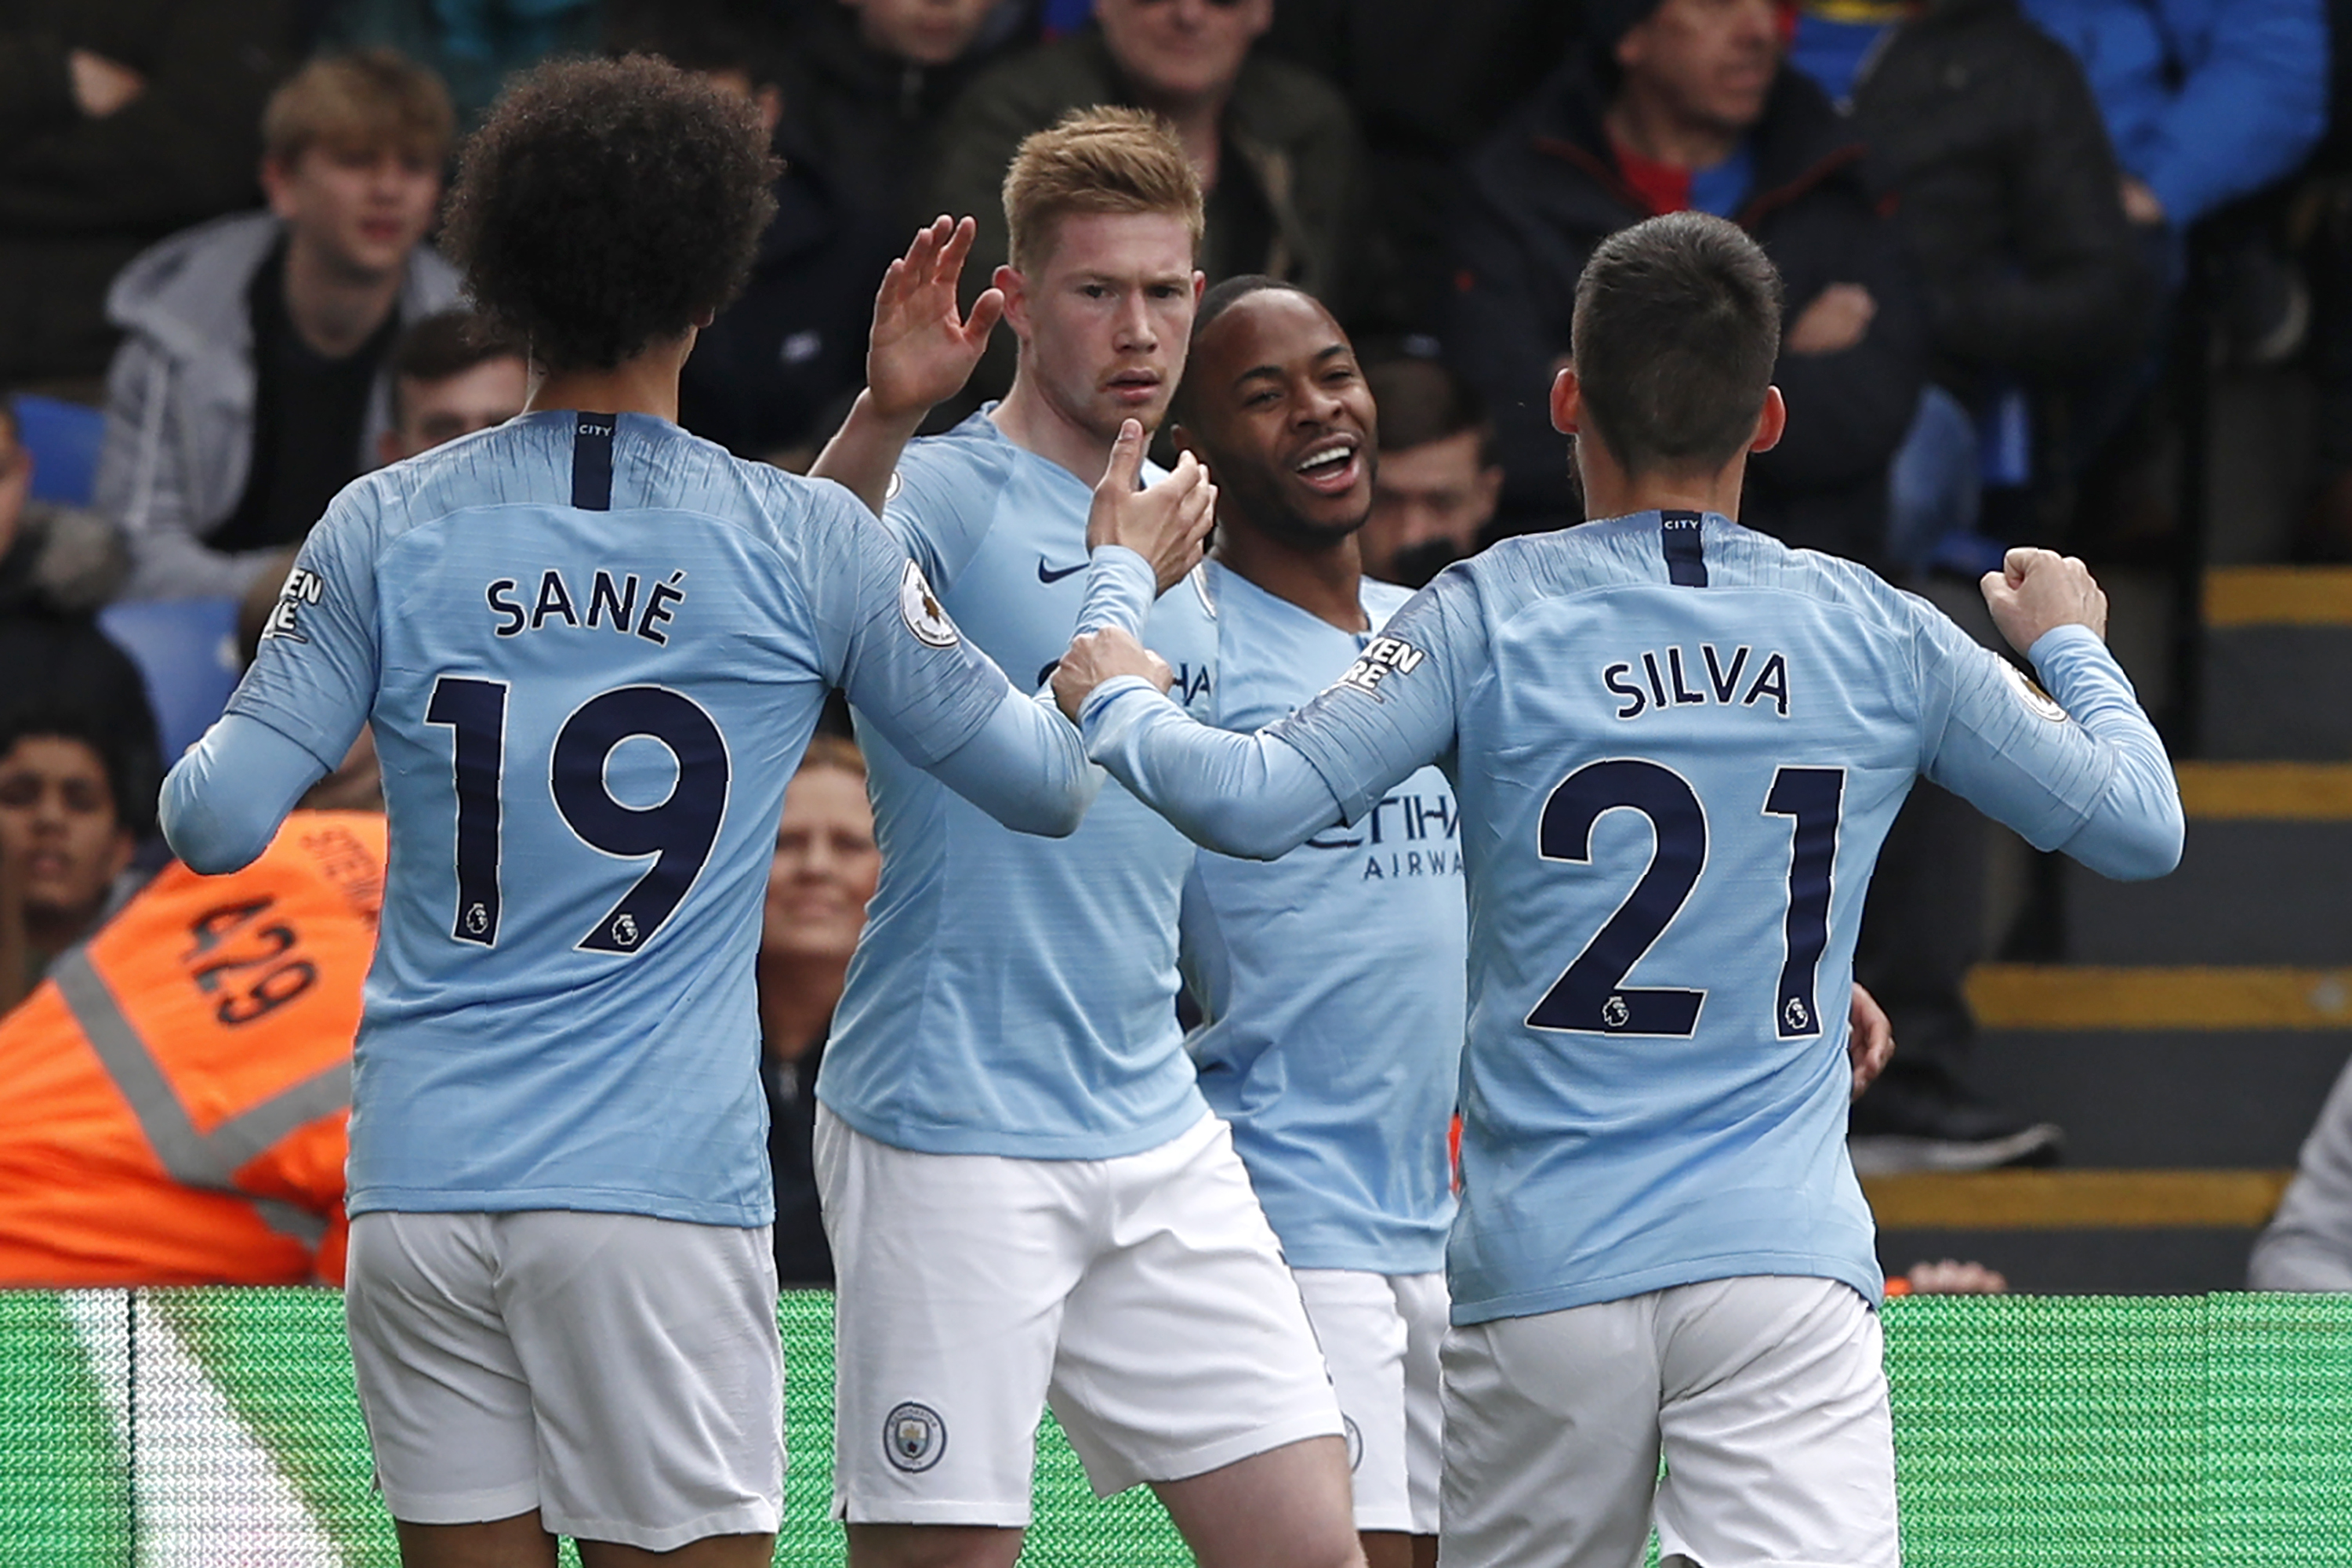 Manchester City's English midfielder Raheem Sterling (2nd R) celebrates with teammates after scoring the opening goal of the English Premier League football match between Crystal Palace and Manchester City at Selhurst Park in south London on April 14, 2019.